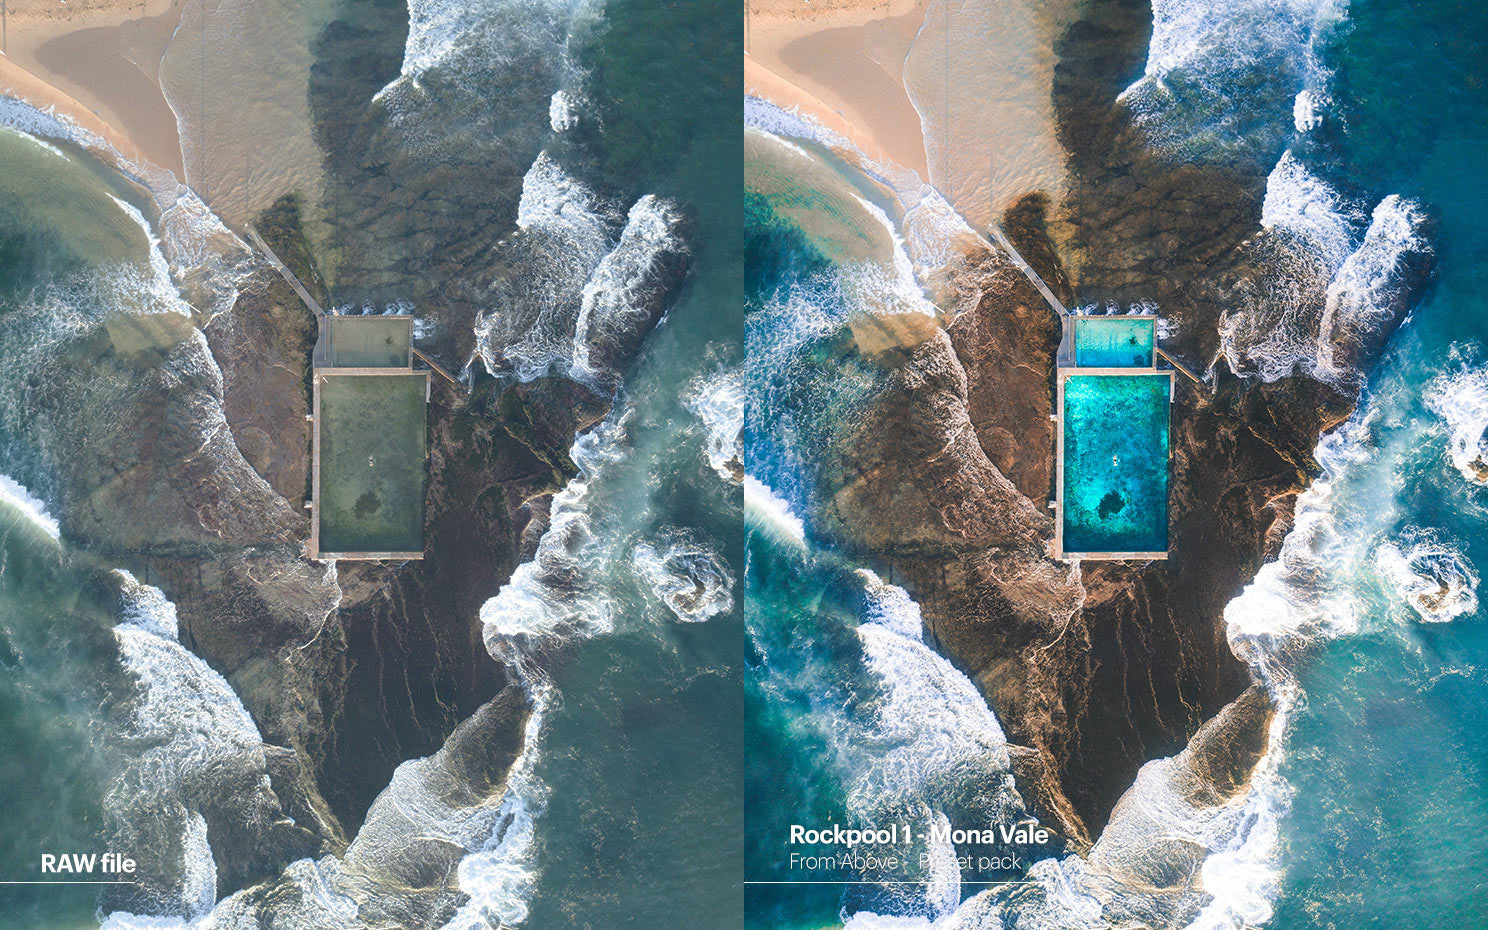 Pat Kay presets - From Above - Rockpool 1 - Mona vale